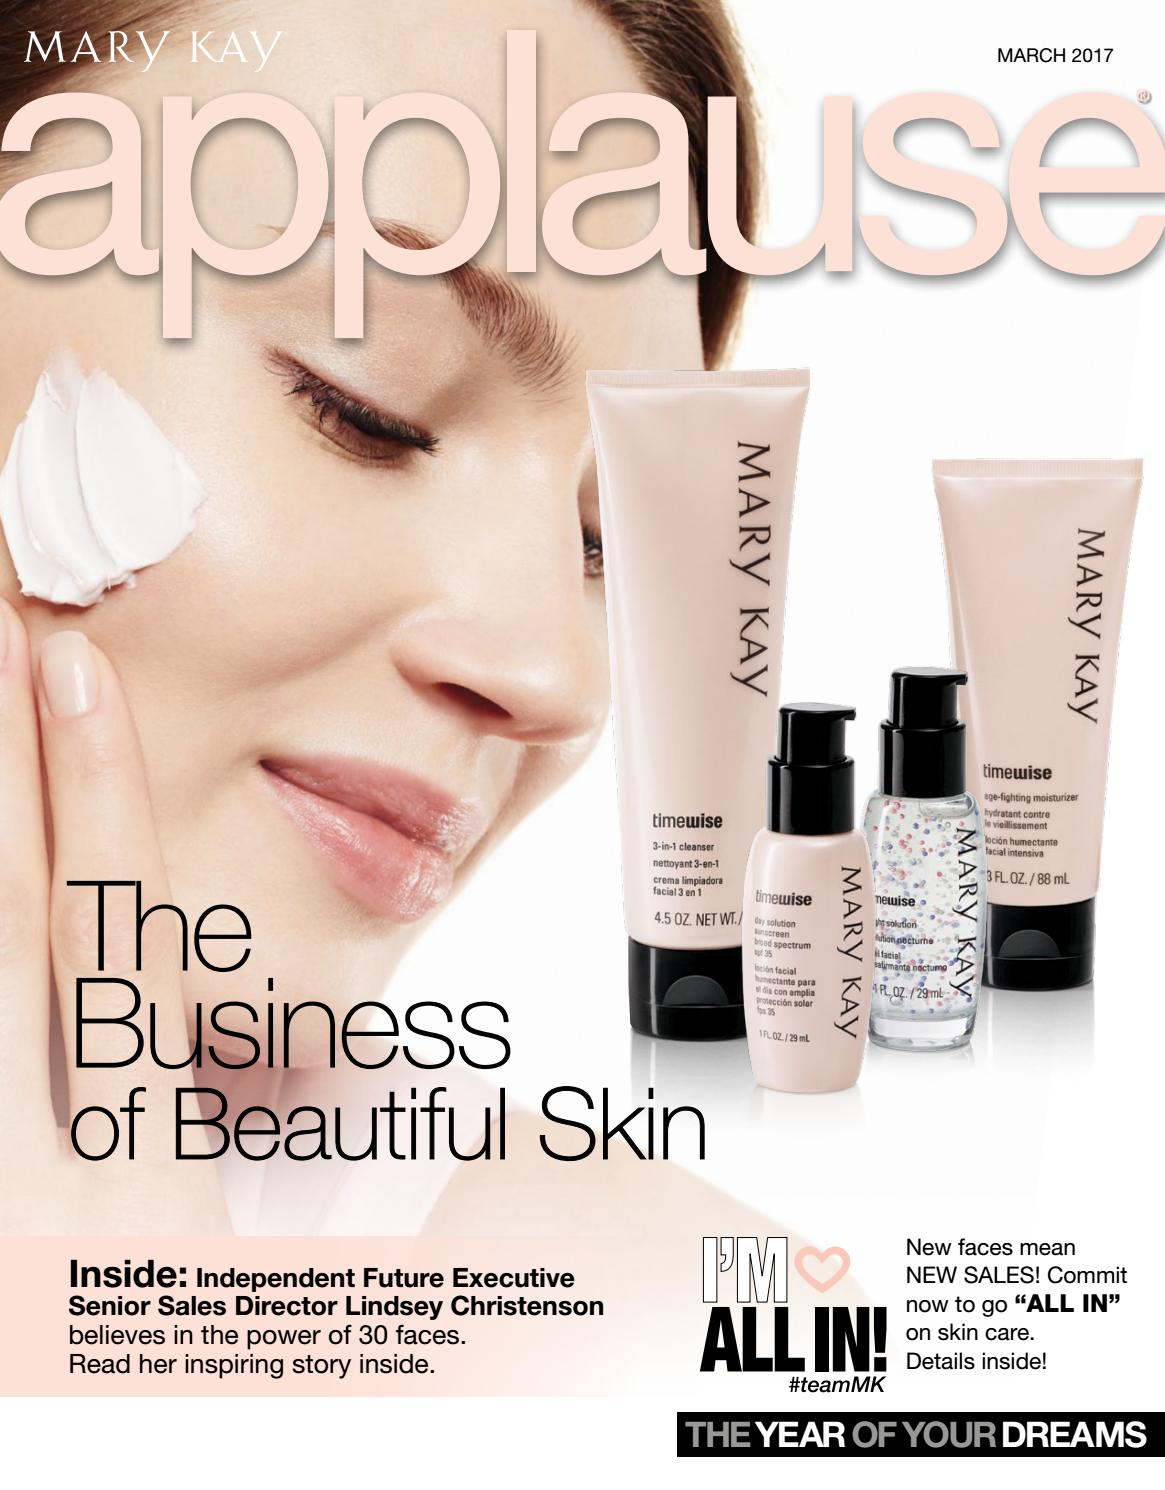 Mary kay online agreement on intouch - Mary Kay Online Agreement On Intouch 11